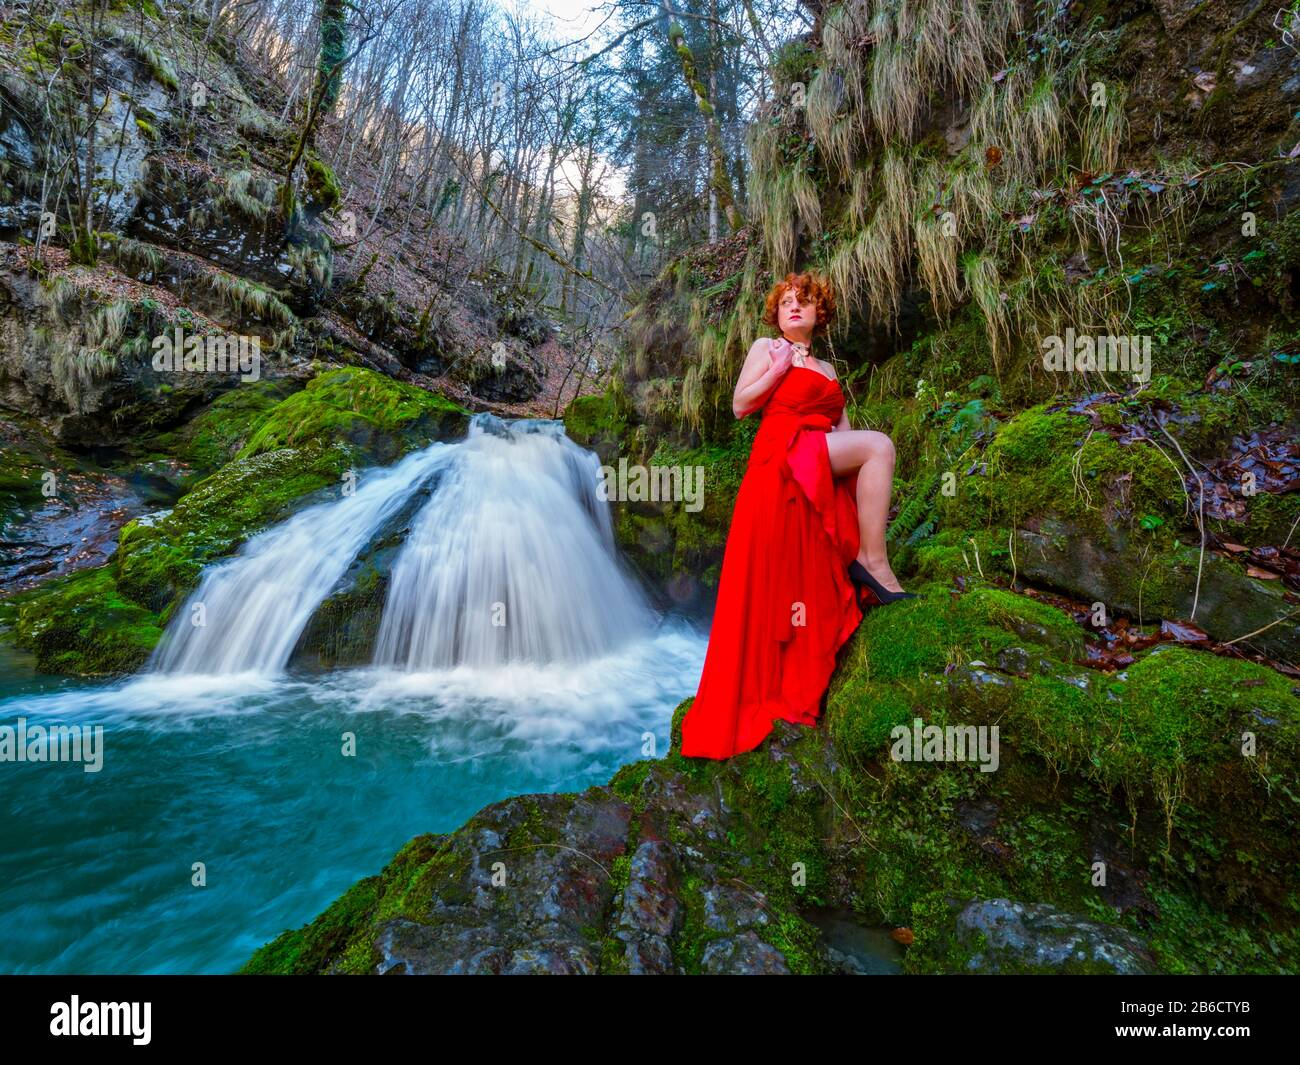 Fanciful woman wearing long Red dress legs heels in nature standing near flowing water waterfall Green forest Stock Photo